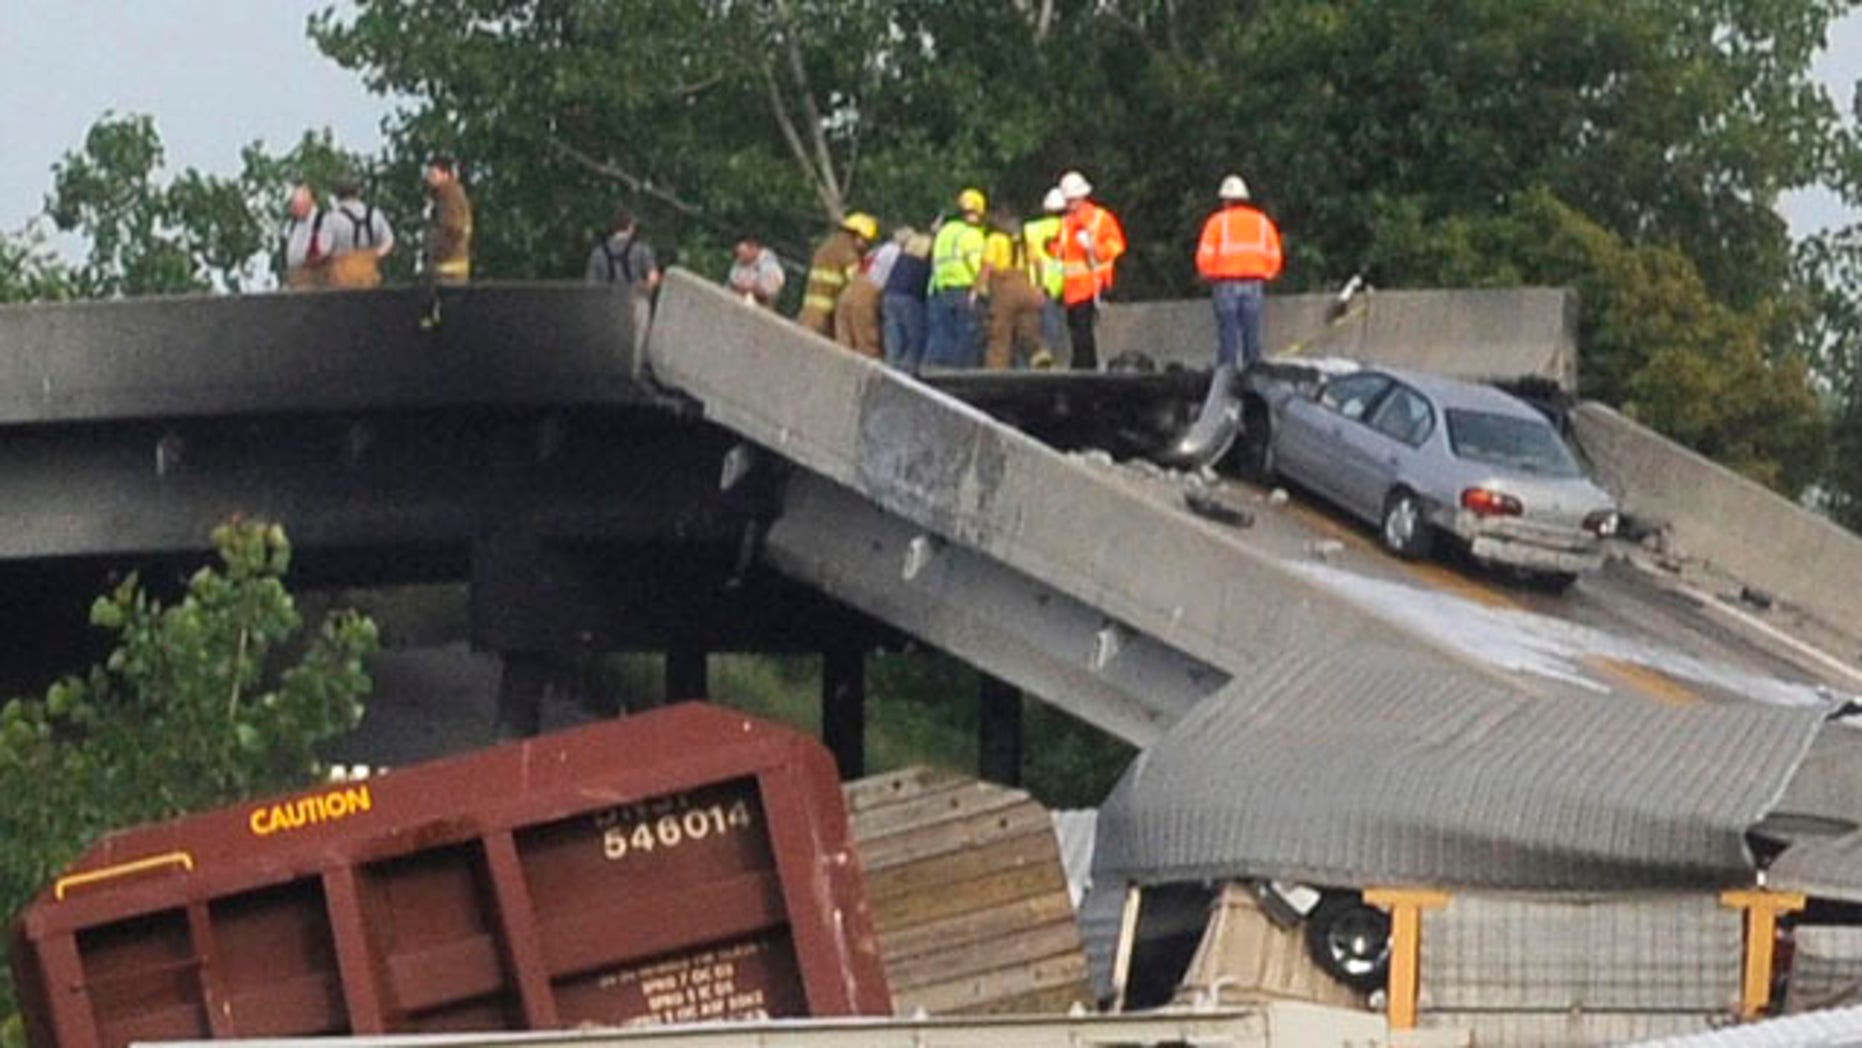 May 25, 2013: Emergency personnel respond to the scene of a train derailment near Rockview, Mo.